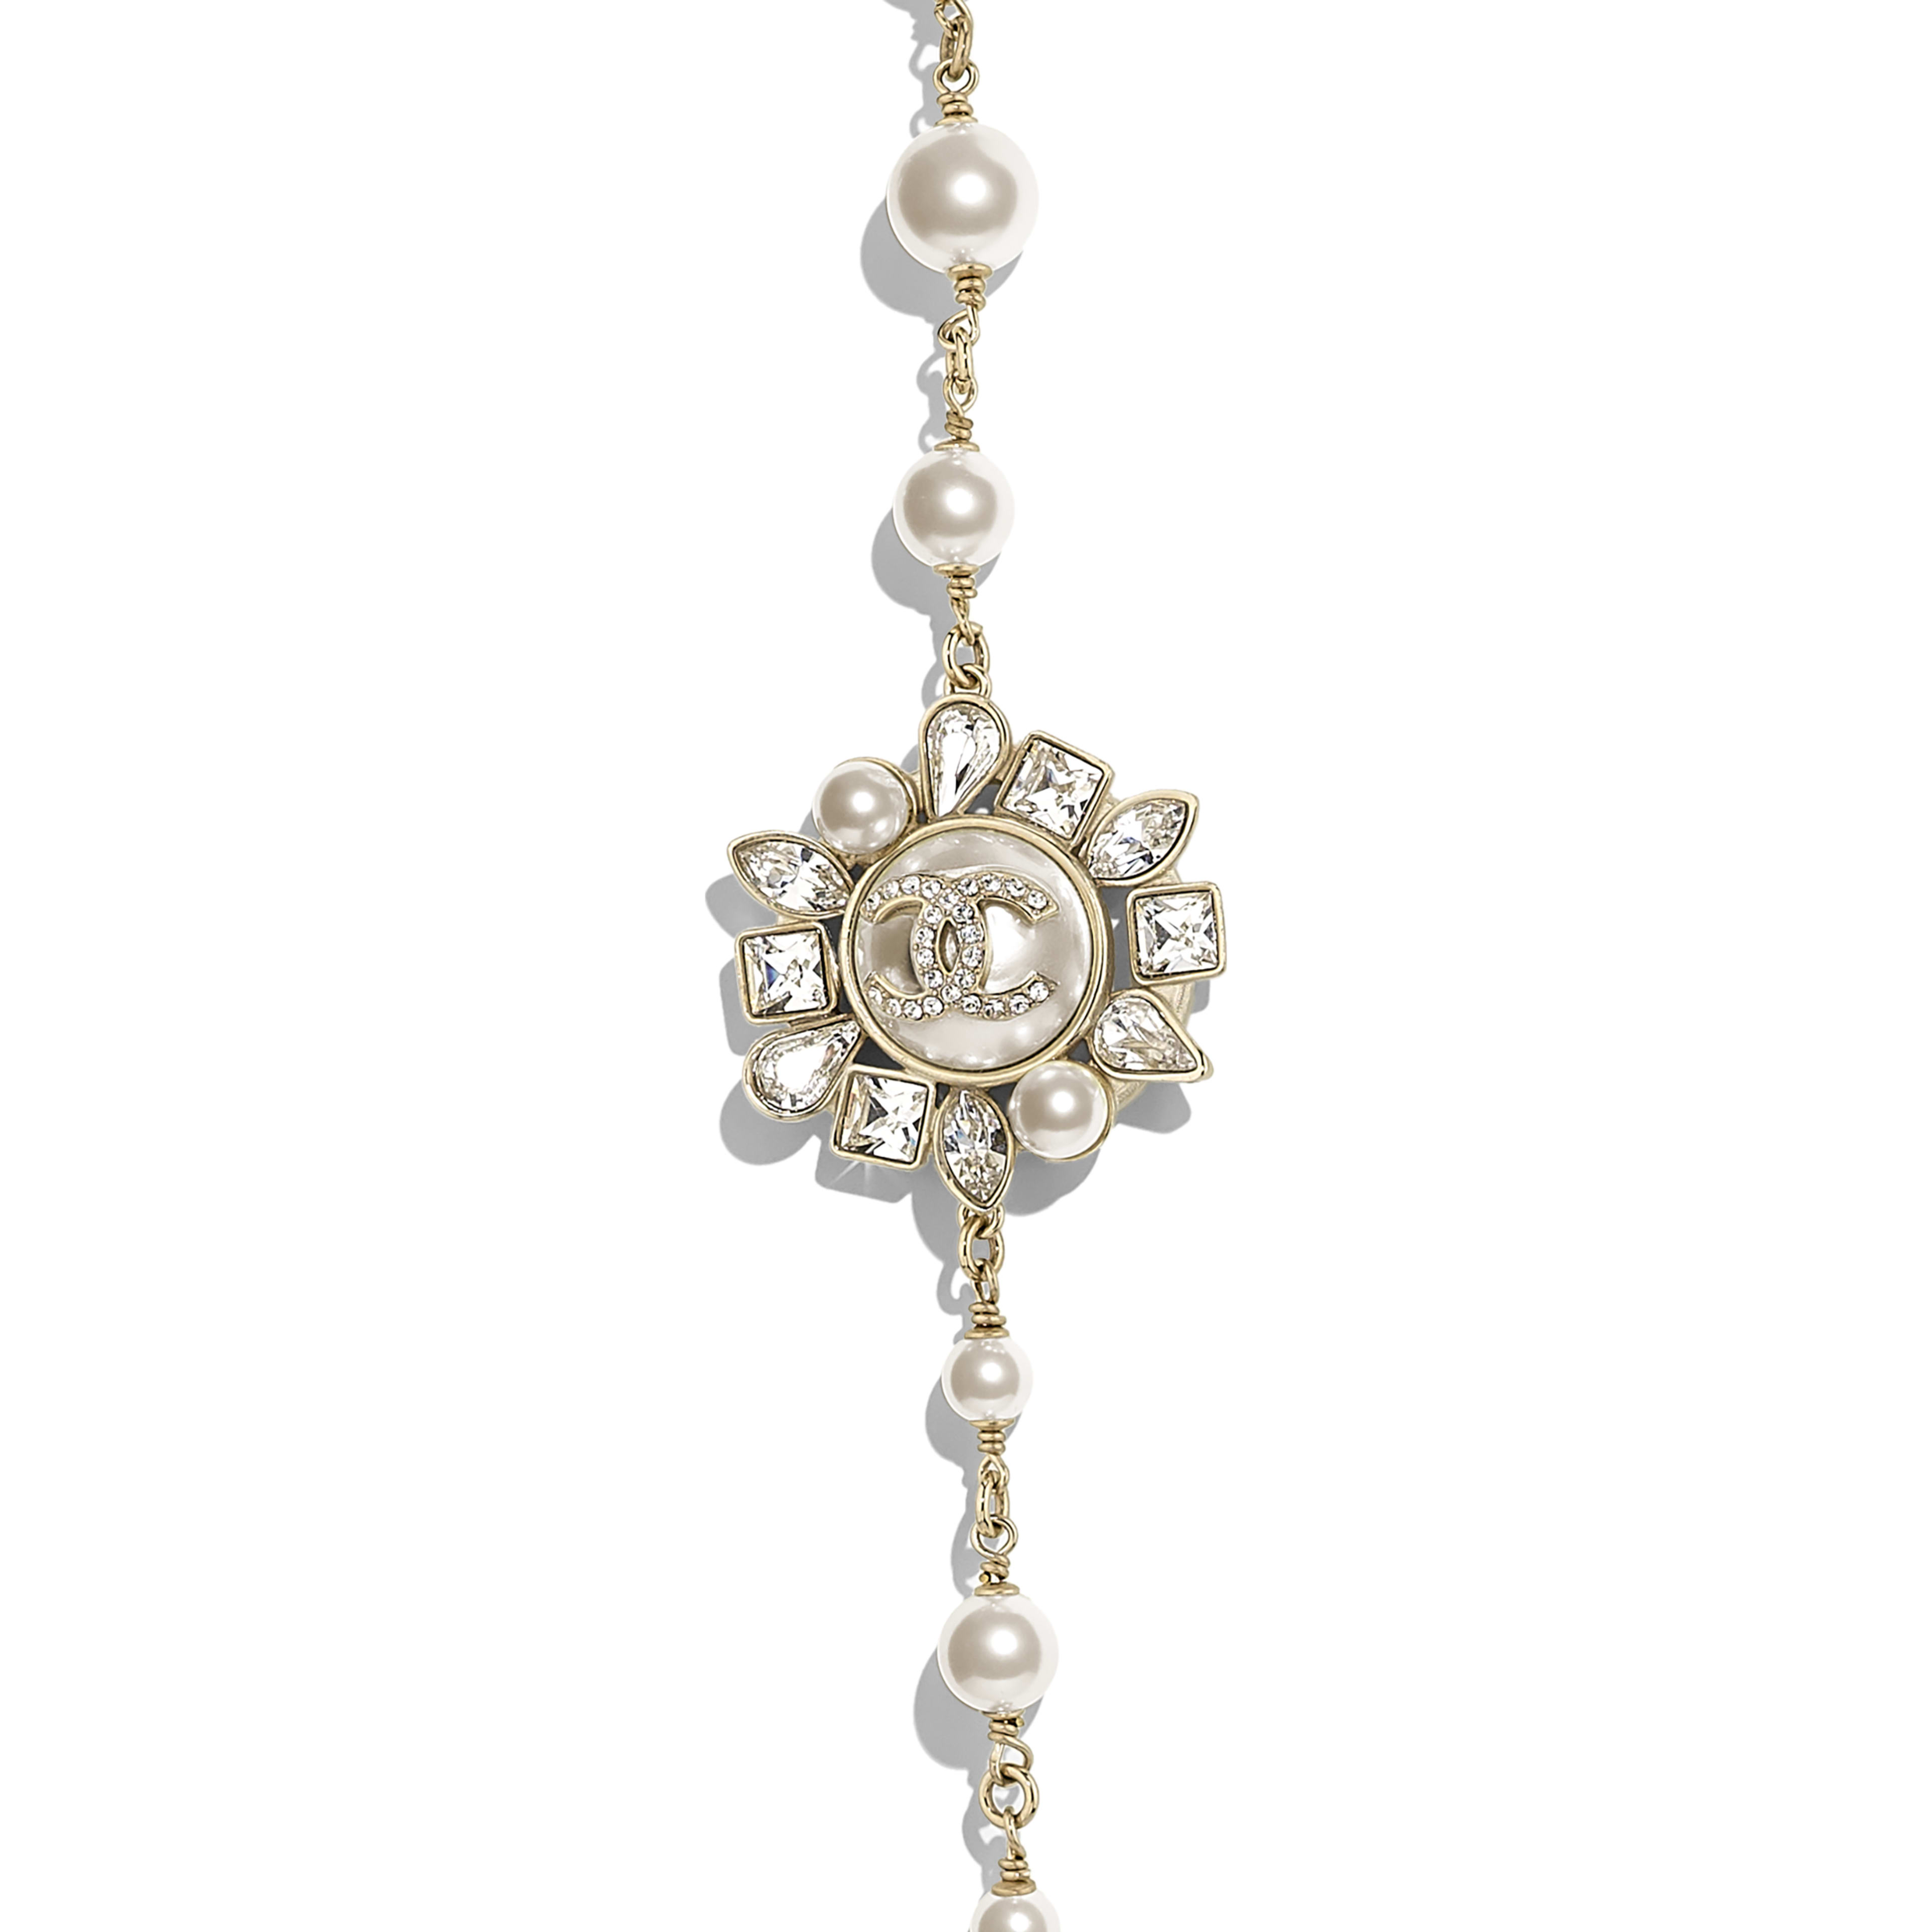 Long Necklace - Gold, Pearly White & Crystal - Metal, Glass Pearls, Strass & Resin - Other view - see full sized version